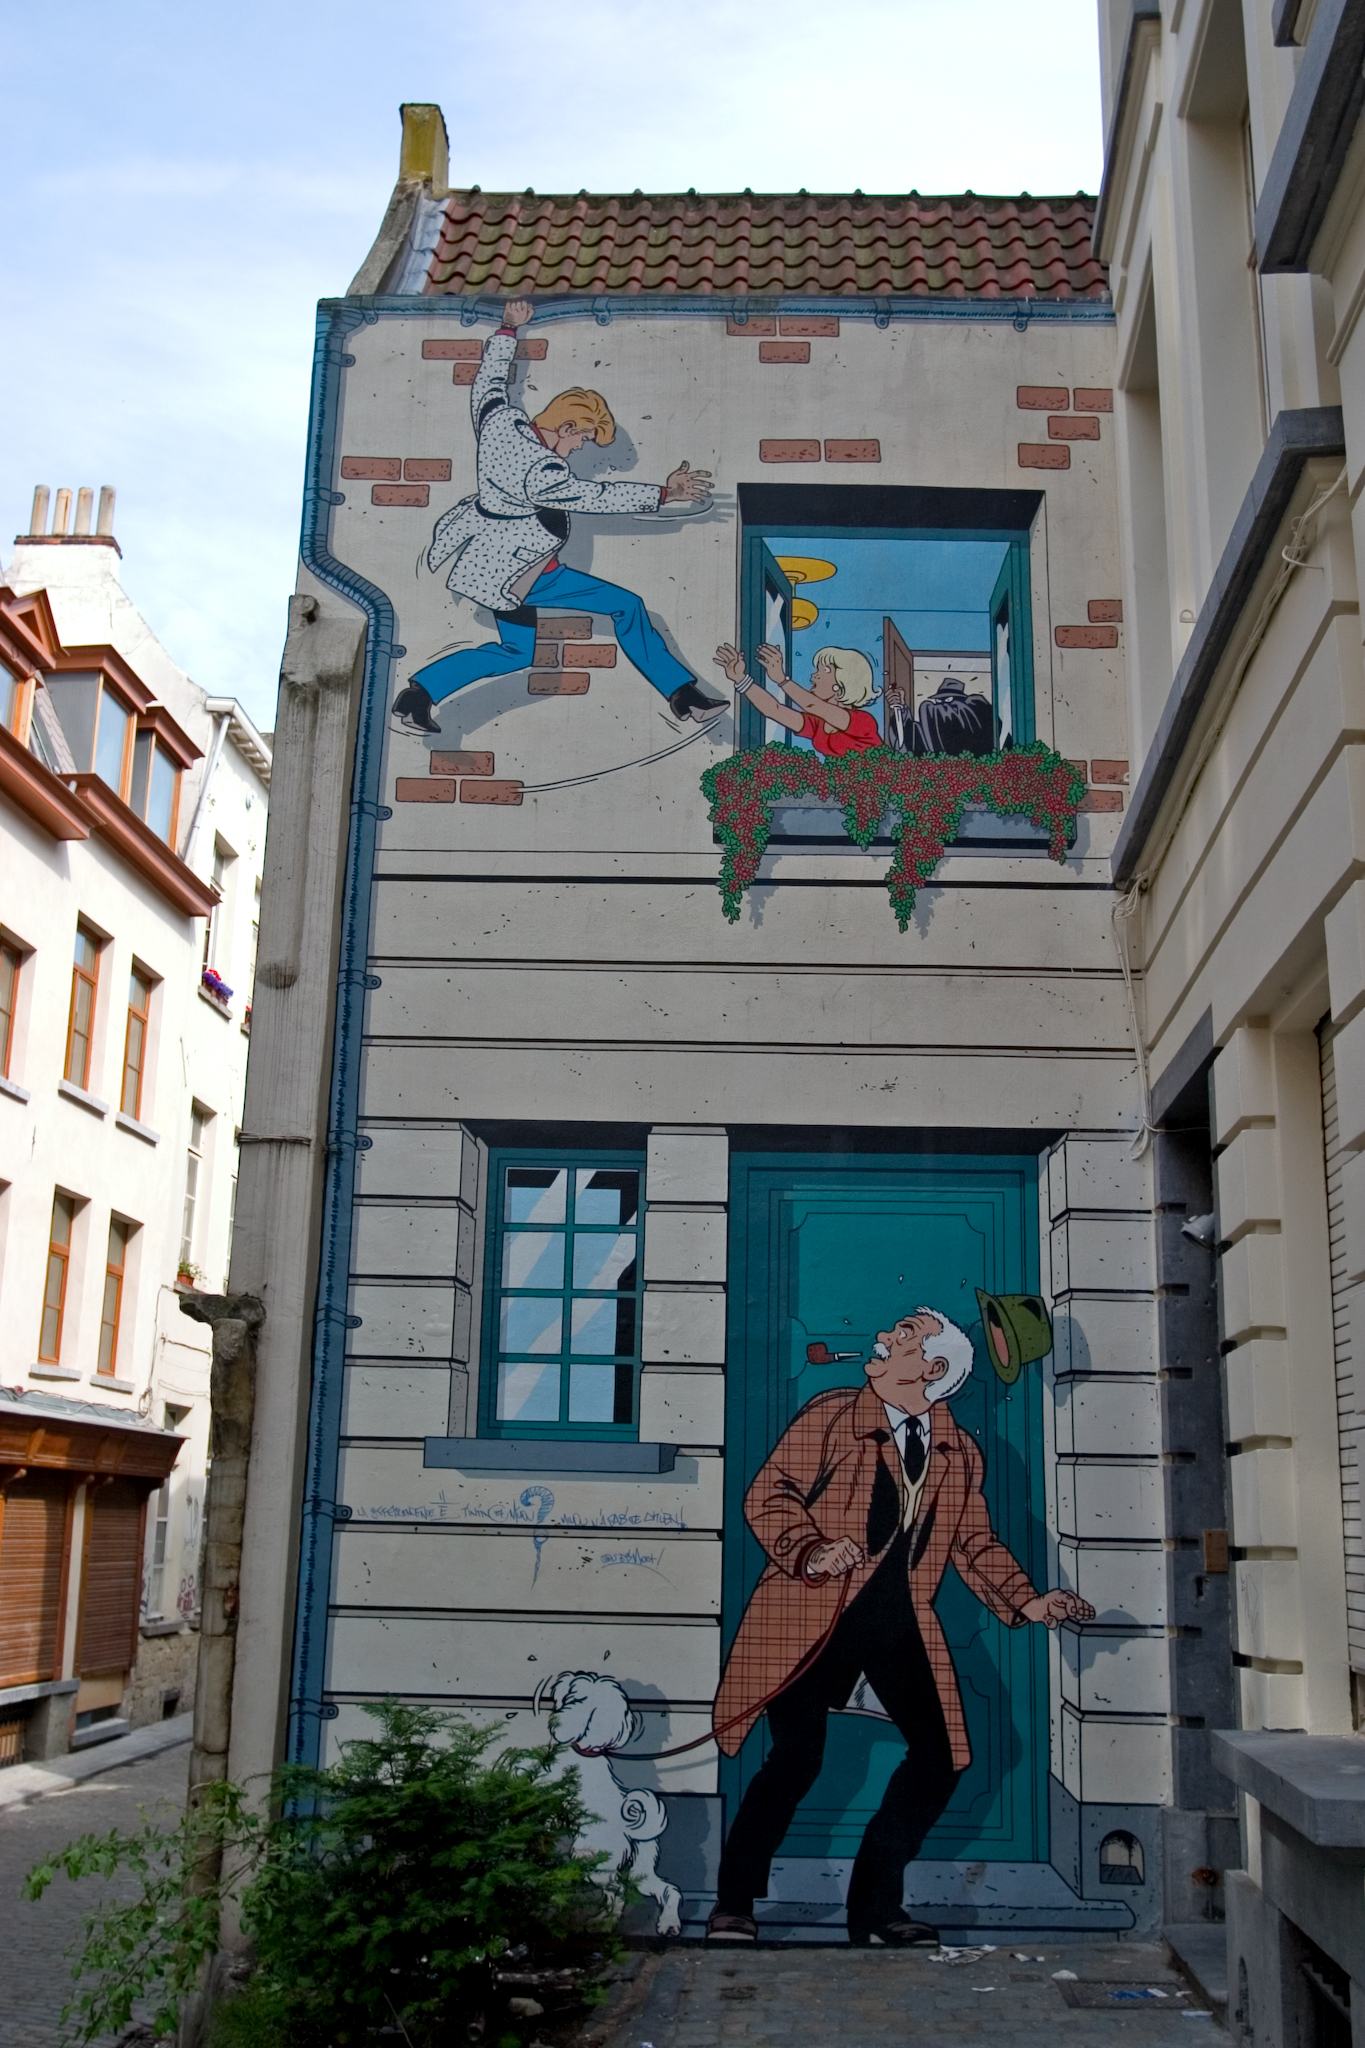 Top 10 Murals To Check Out On The Brussels Comic Book Route